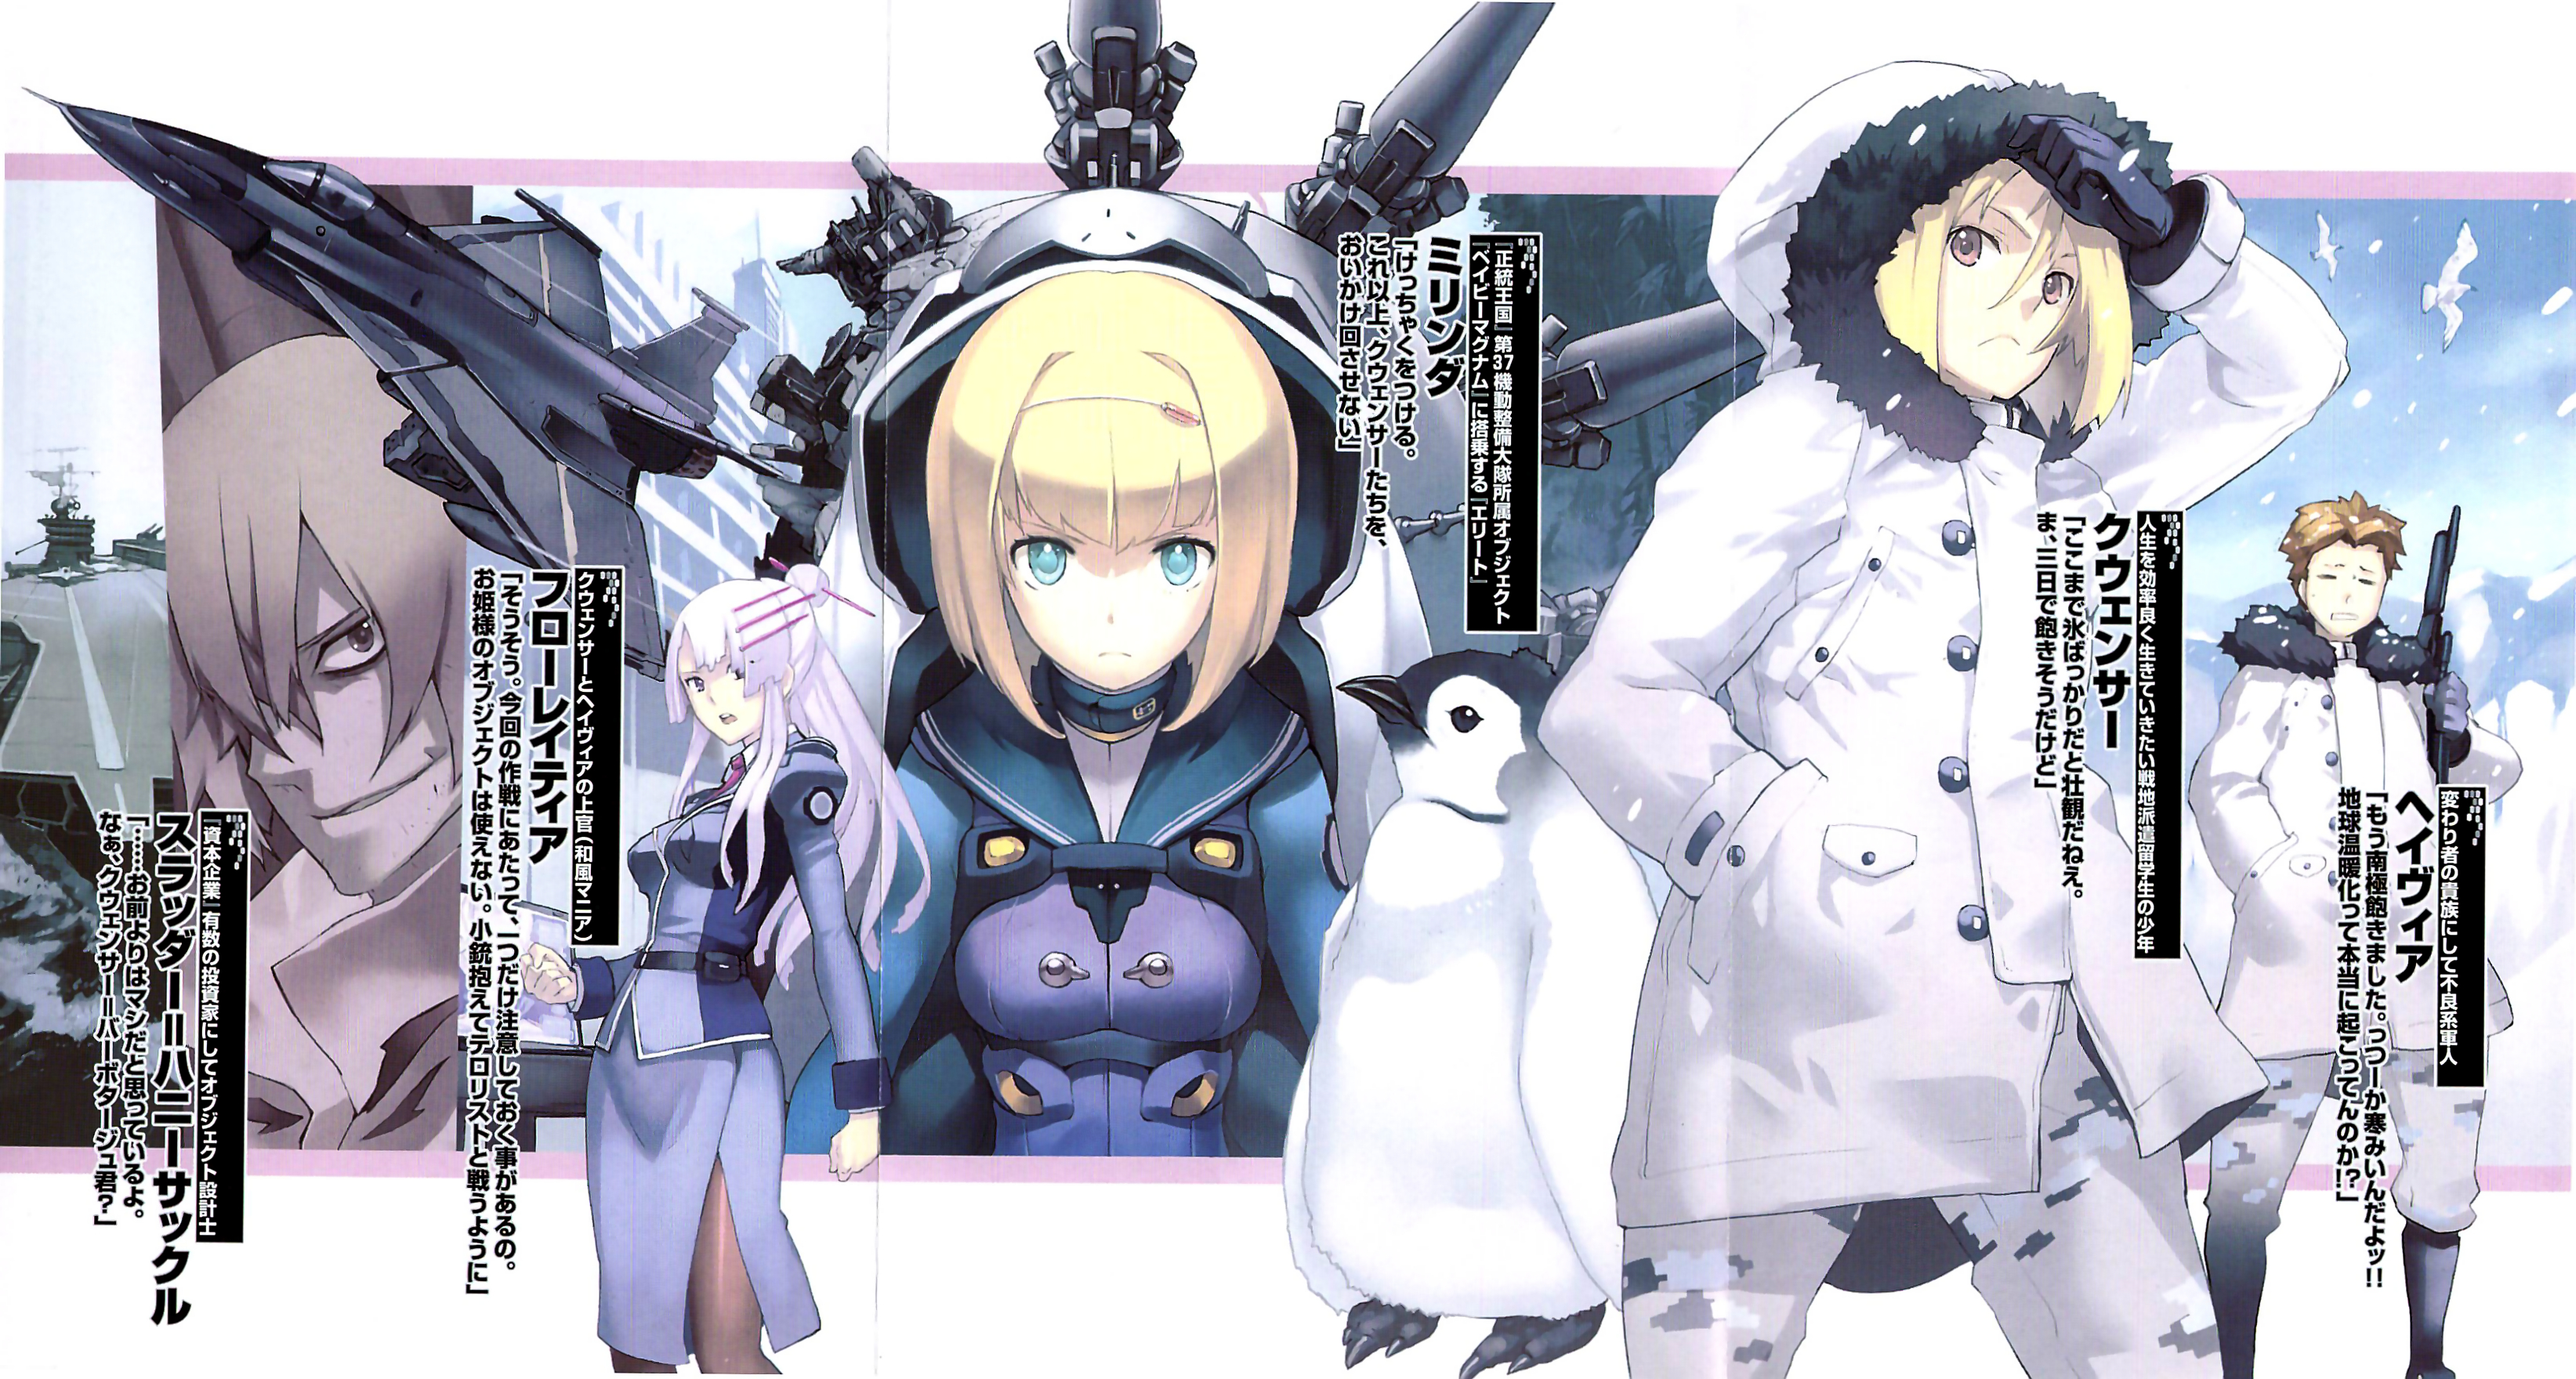 HQ Heavy Object Wallpapers | File 4339.15Kb